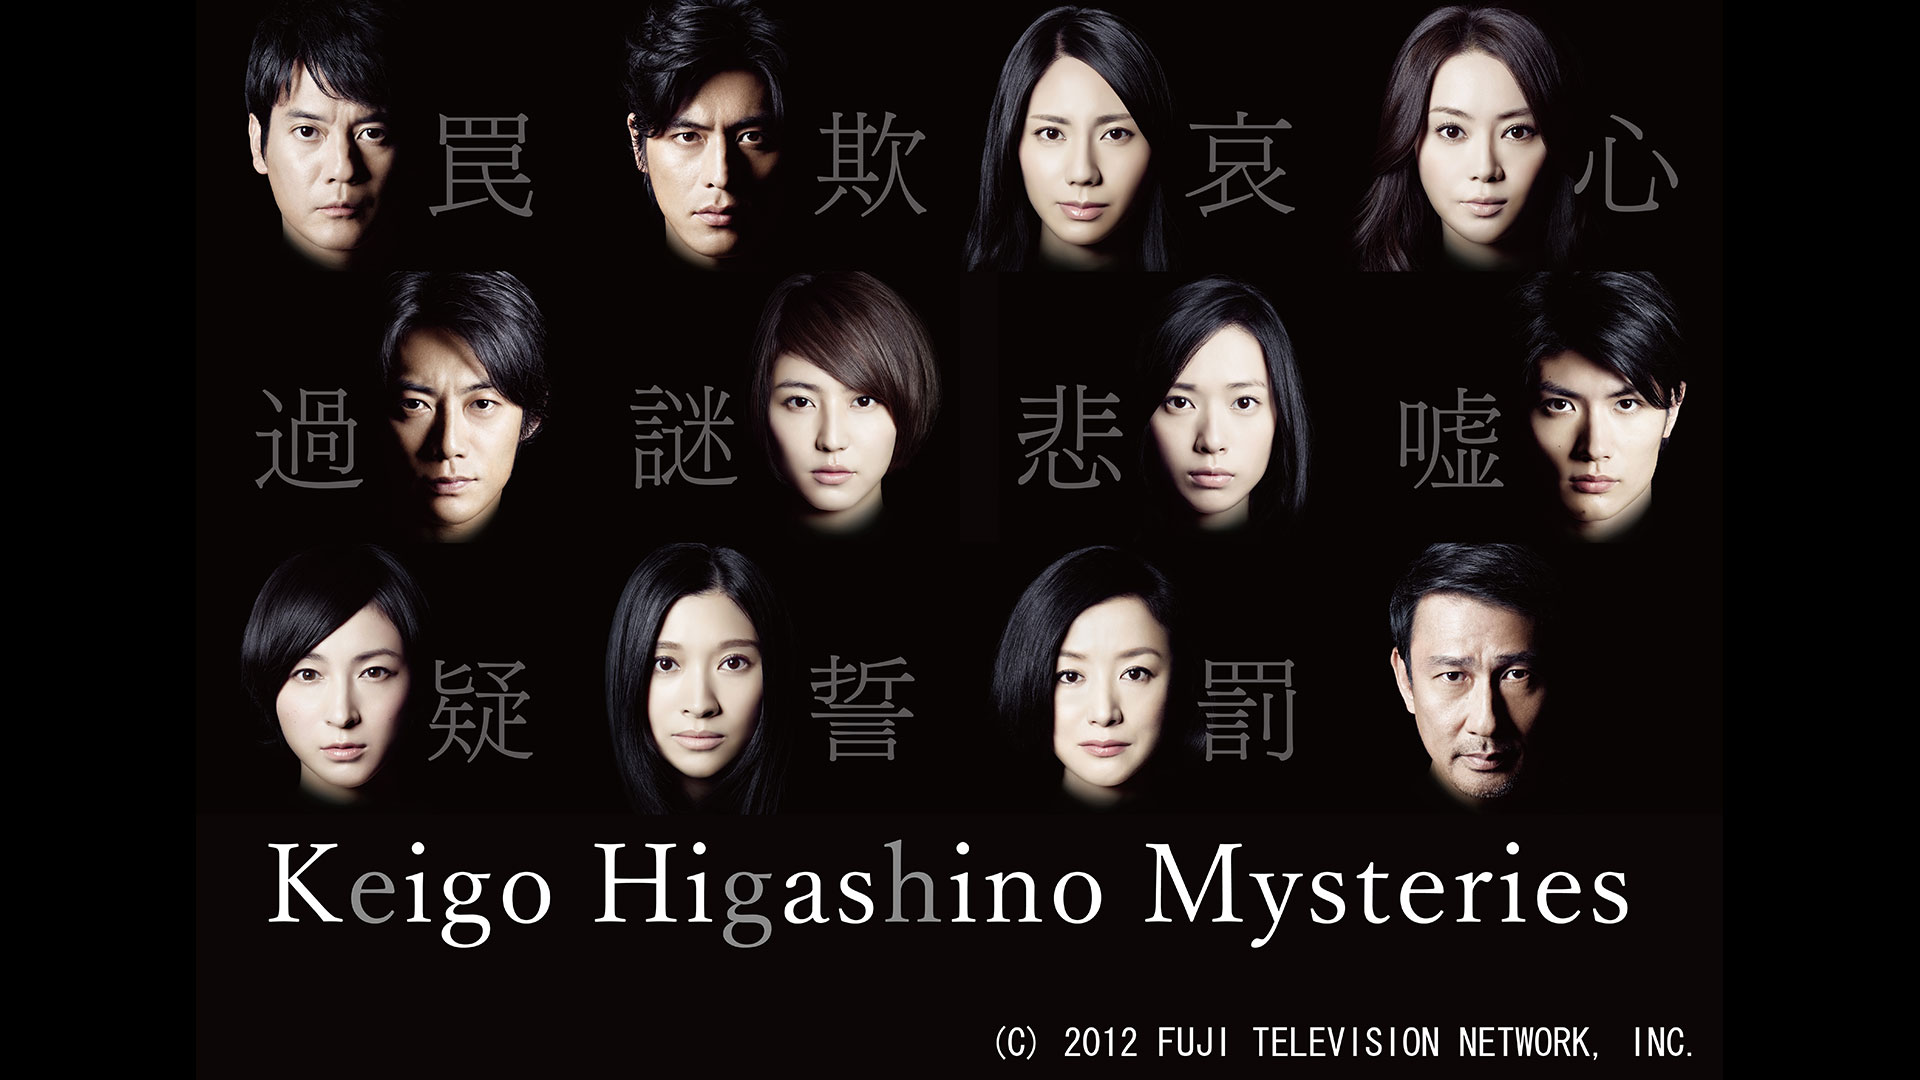 Keigo Higashino Mysteries 08 - Faint Motives